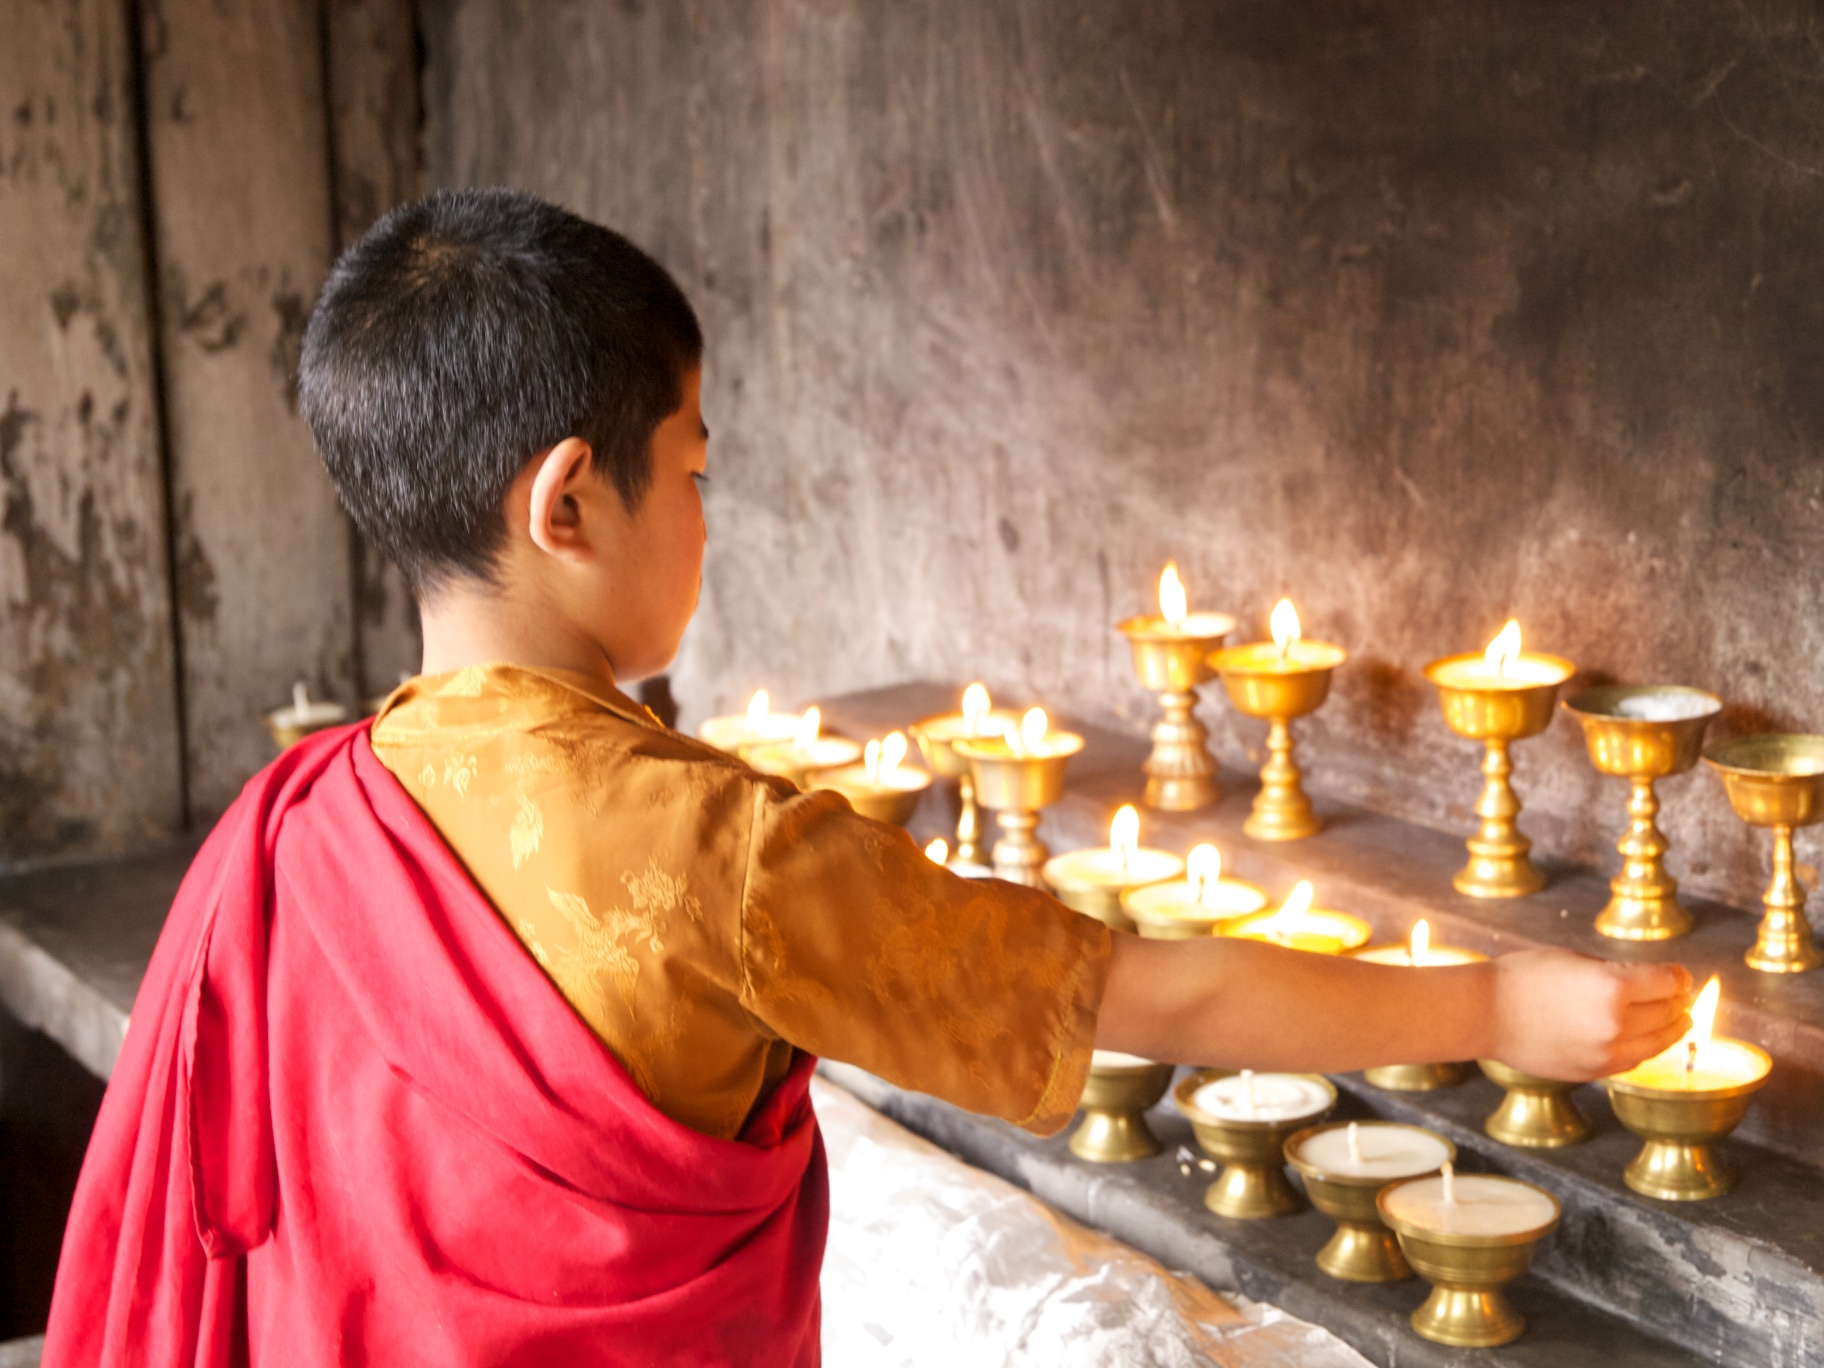 Lighting Butter Candles in Monastery